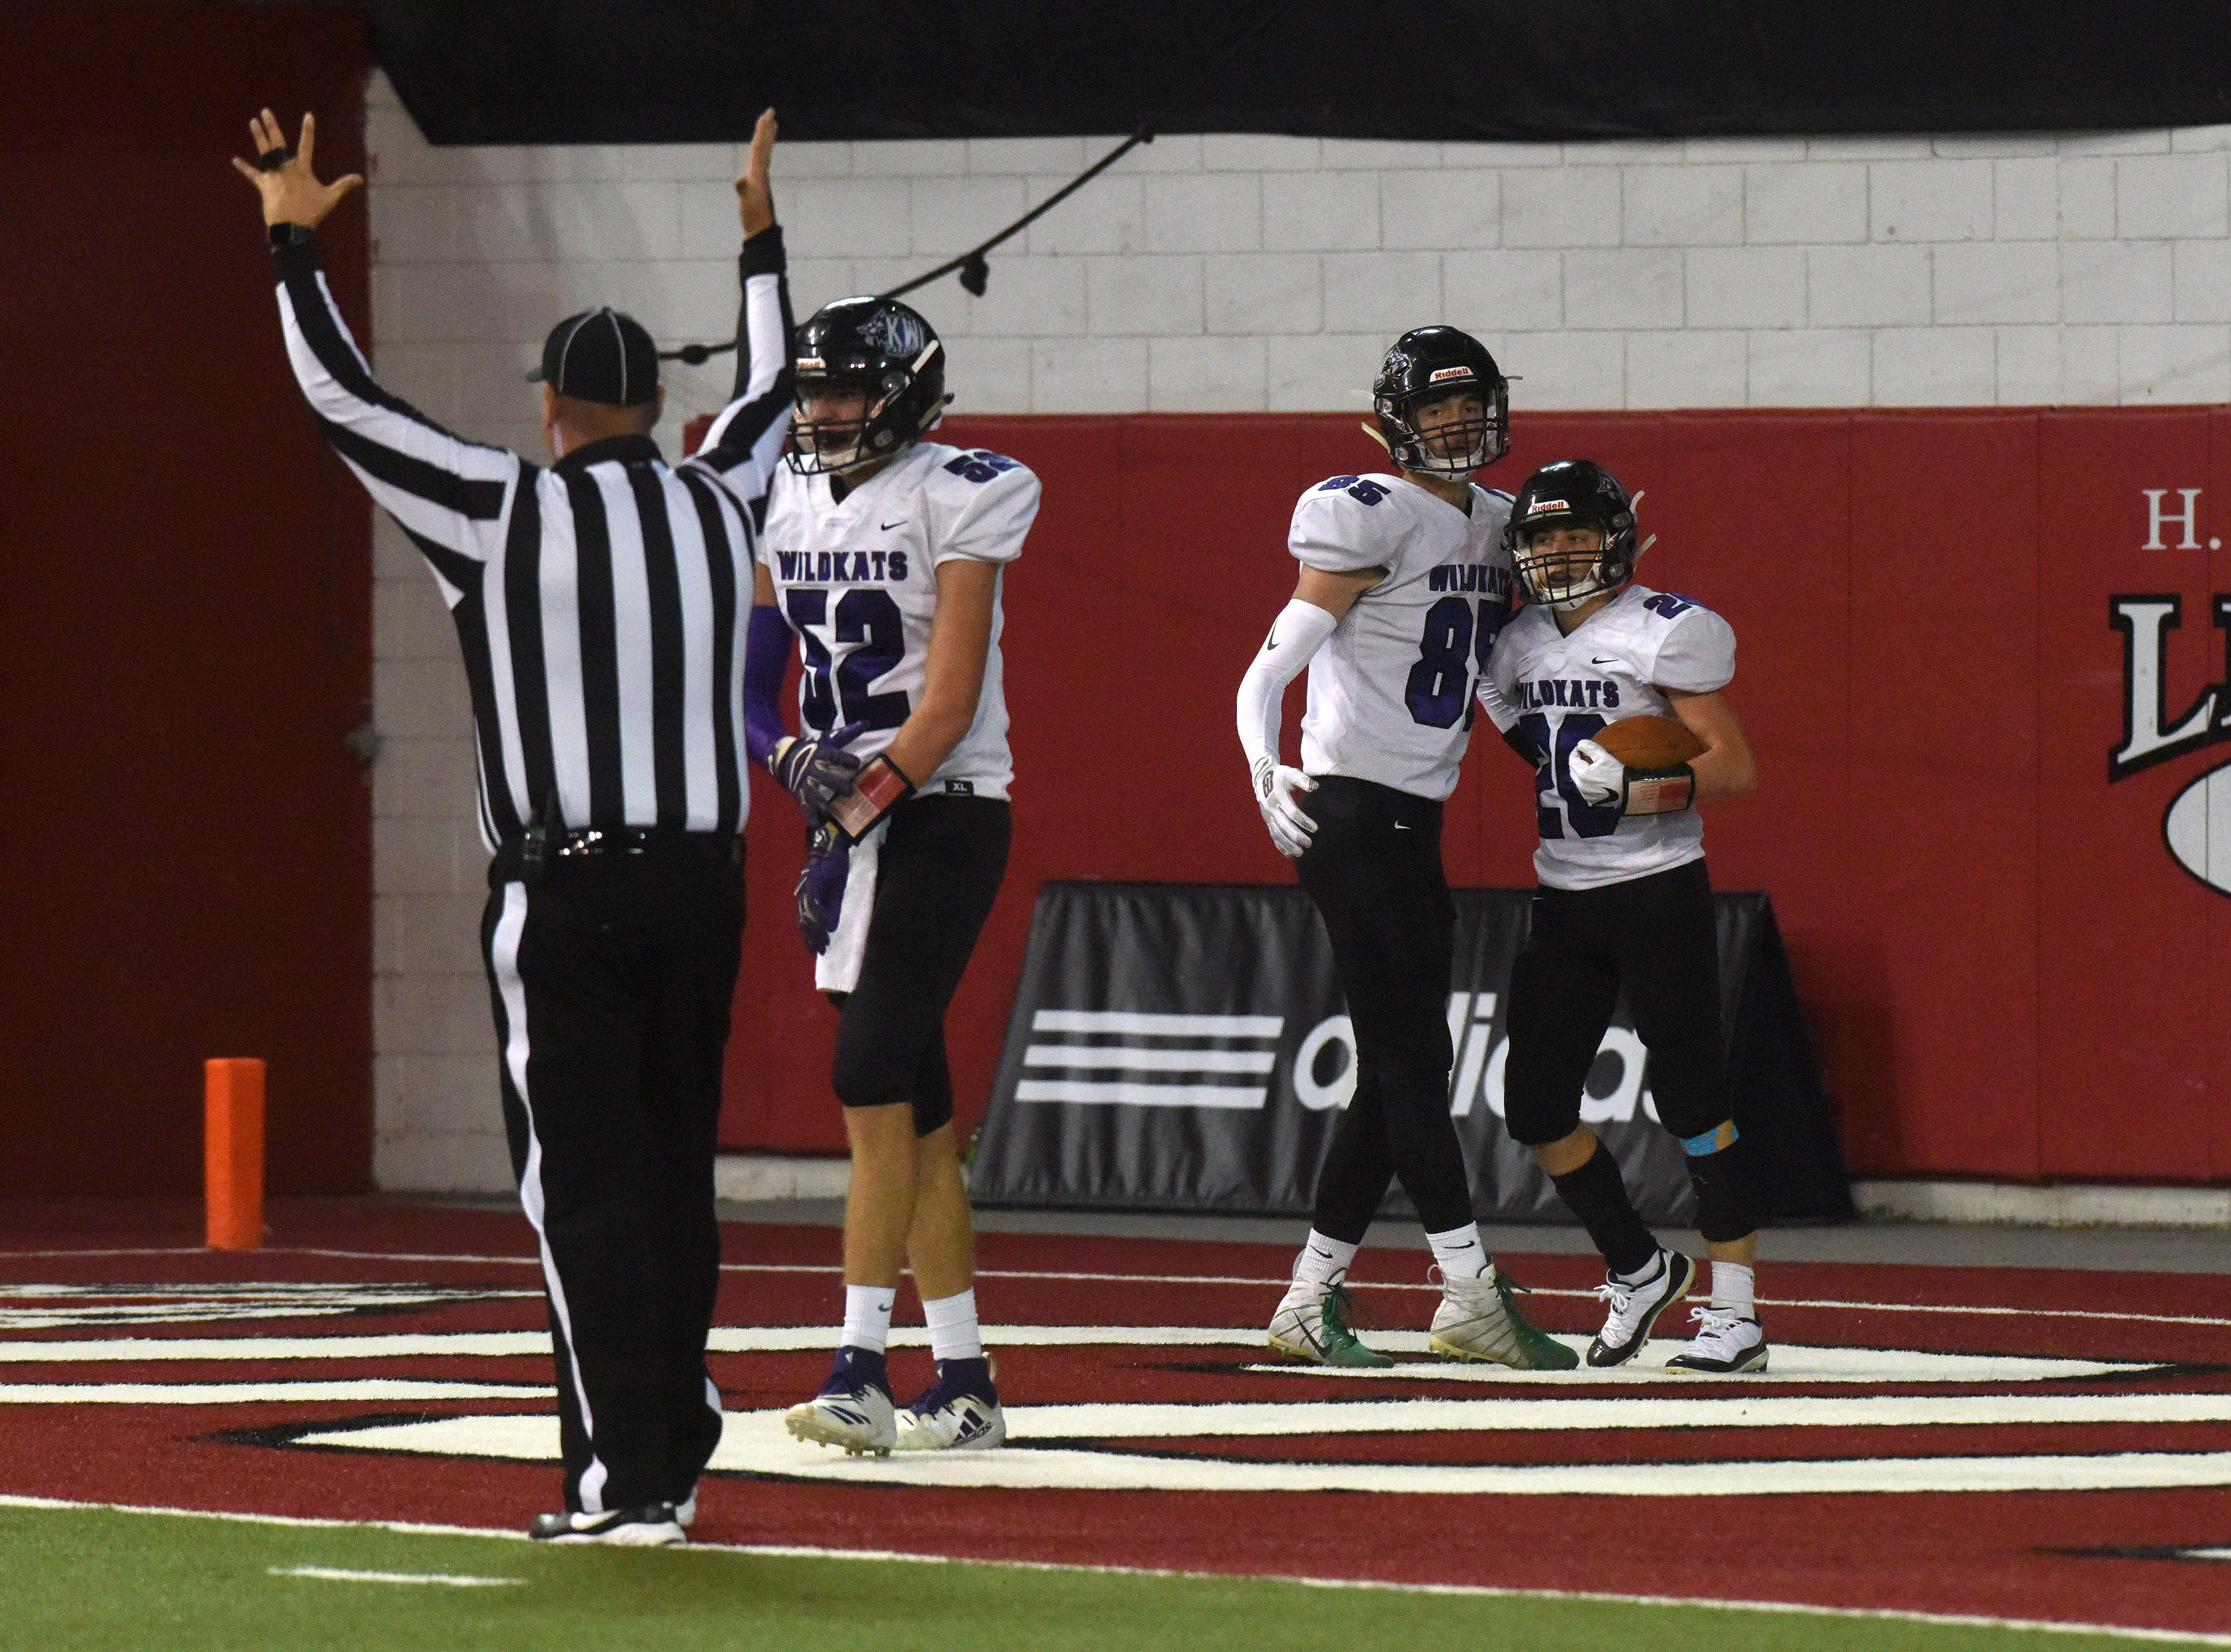 Kimball/White Lake players celebrate after scoring a touchdown during a game against Bon Homme, Thursday, Nov. 8, 2018 at the DakotaDome in Vermillion, S.D.